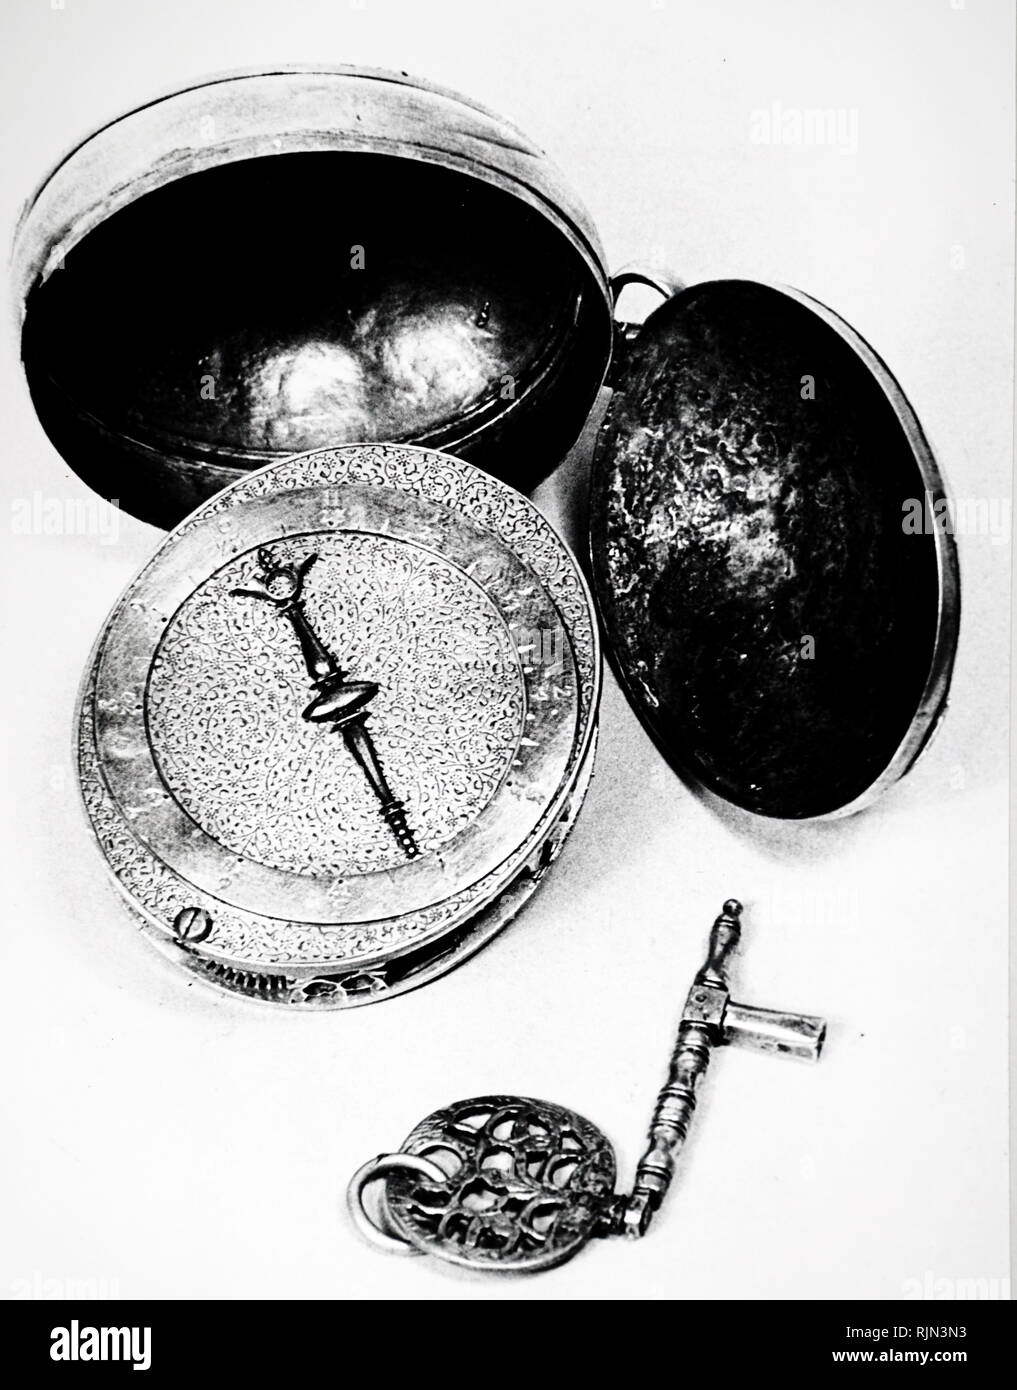 Illustration showing a Nuremberg Egg, an early type of pocket watch with a verge escapement - circa 1500. - Stock Image